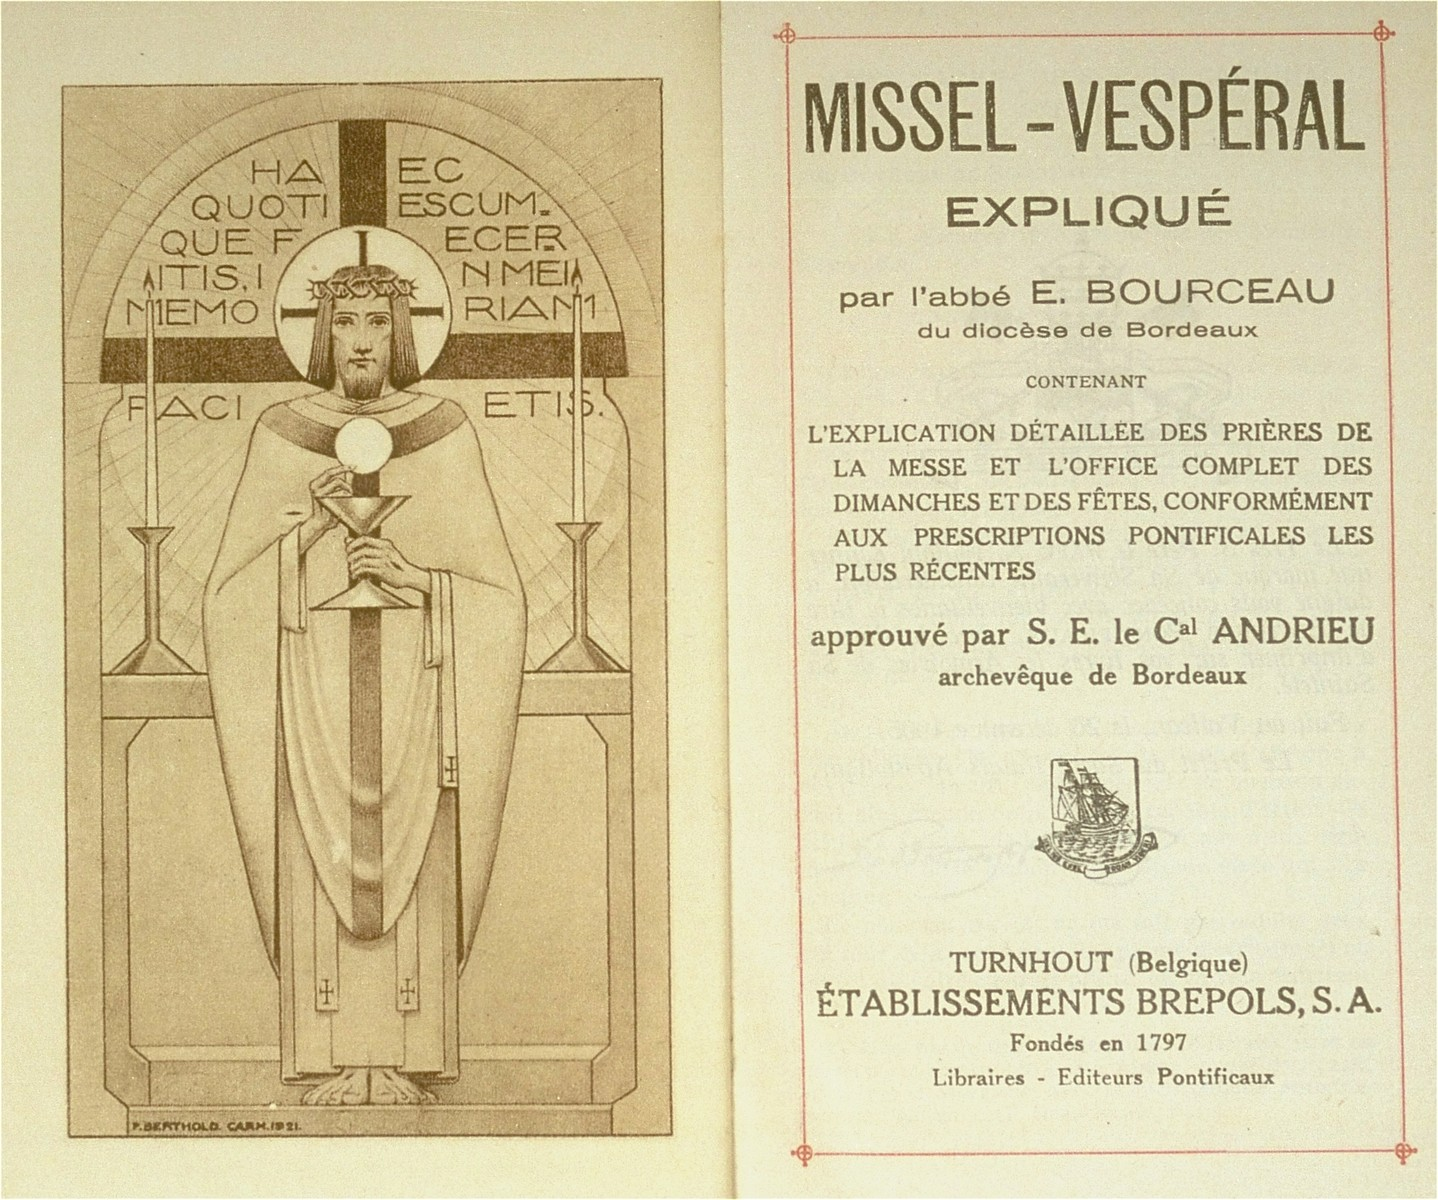 Title page of a Catholic prayerbook given to the donor, Sara Lamhaut, a Belgian-Jewish child in hiding at the Soeurs de Sainte Marie convent school in Wezembeek-Oppem near Brussels, on the occasion of her First Communion.